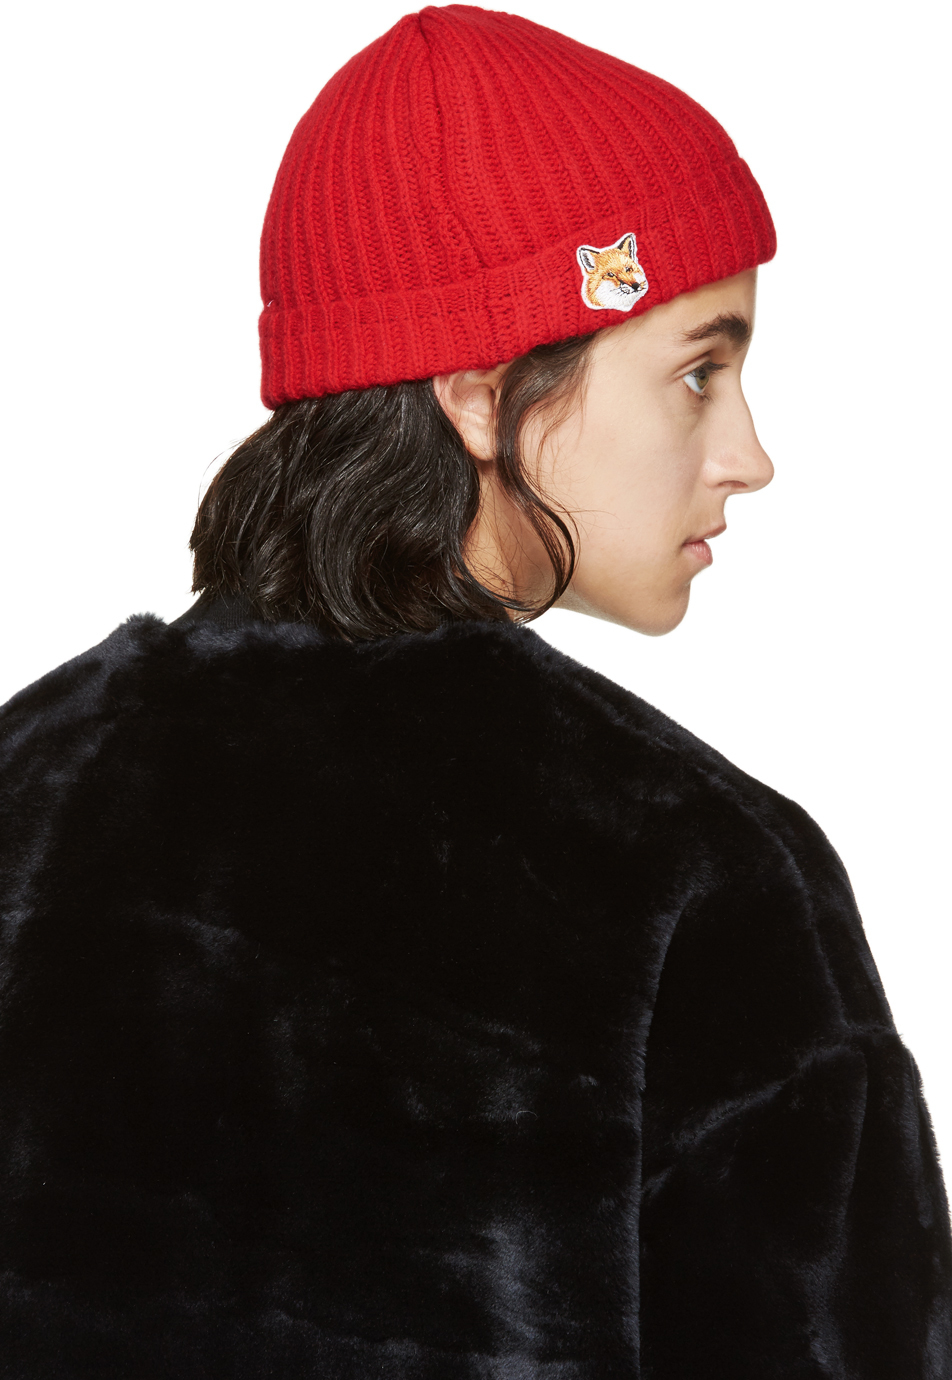 6d53686d225 Lyst - Maison Kitsuné Red Fox Beanie in Red